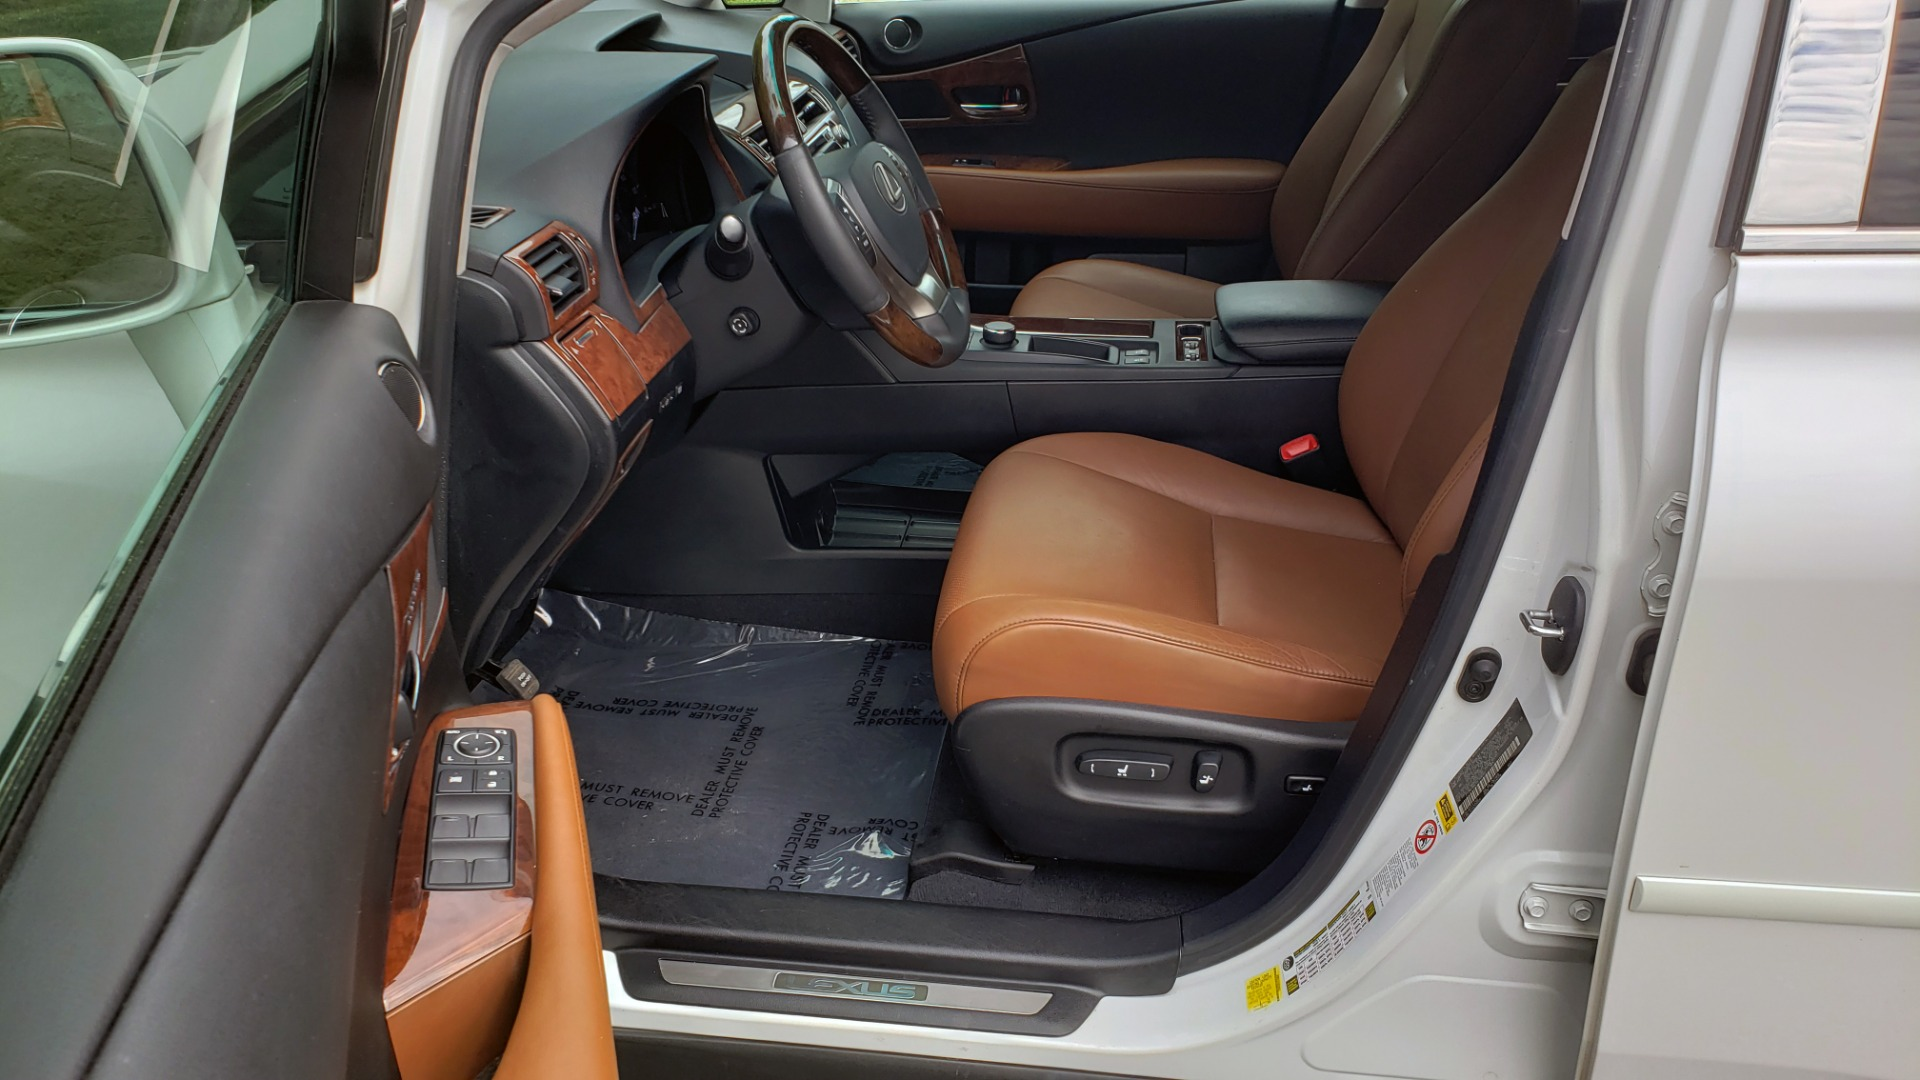 Used 2013 Lexus RX 350 PREMIUM PKG / SUNROOF / BSM / PARK ASST / REARVIEW for sale Sold at Formula Imports in Charlotte NC 28227 35